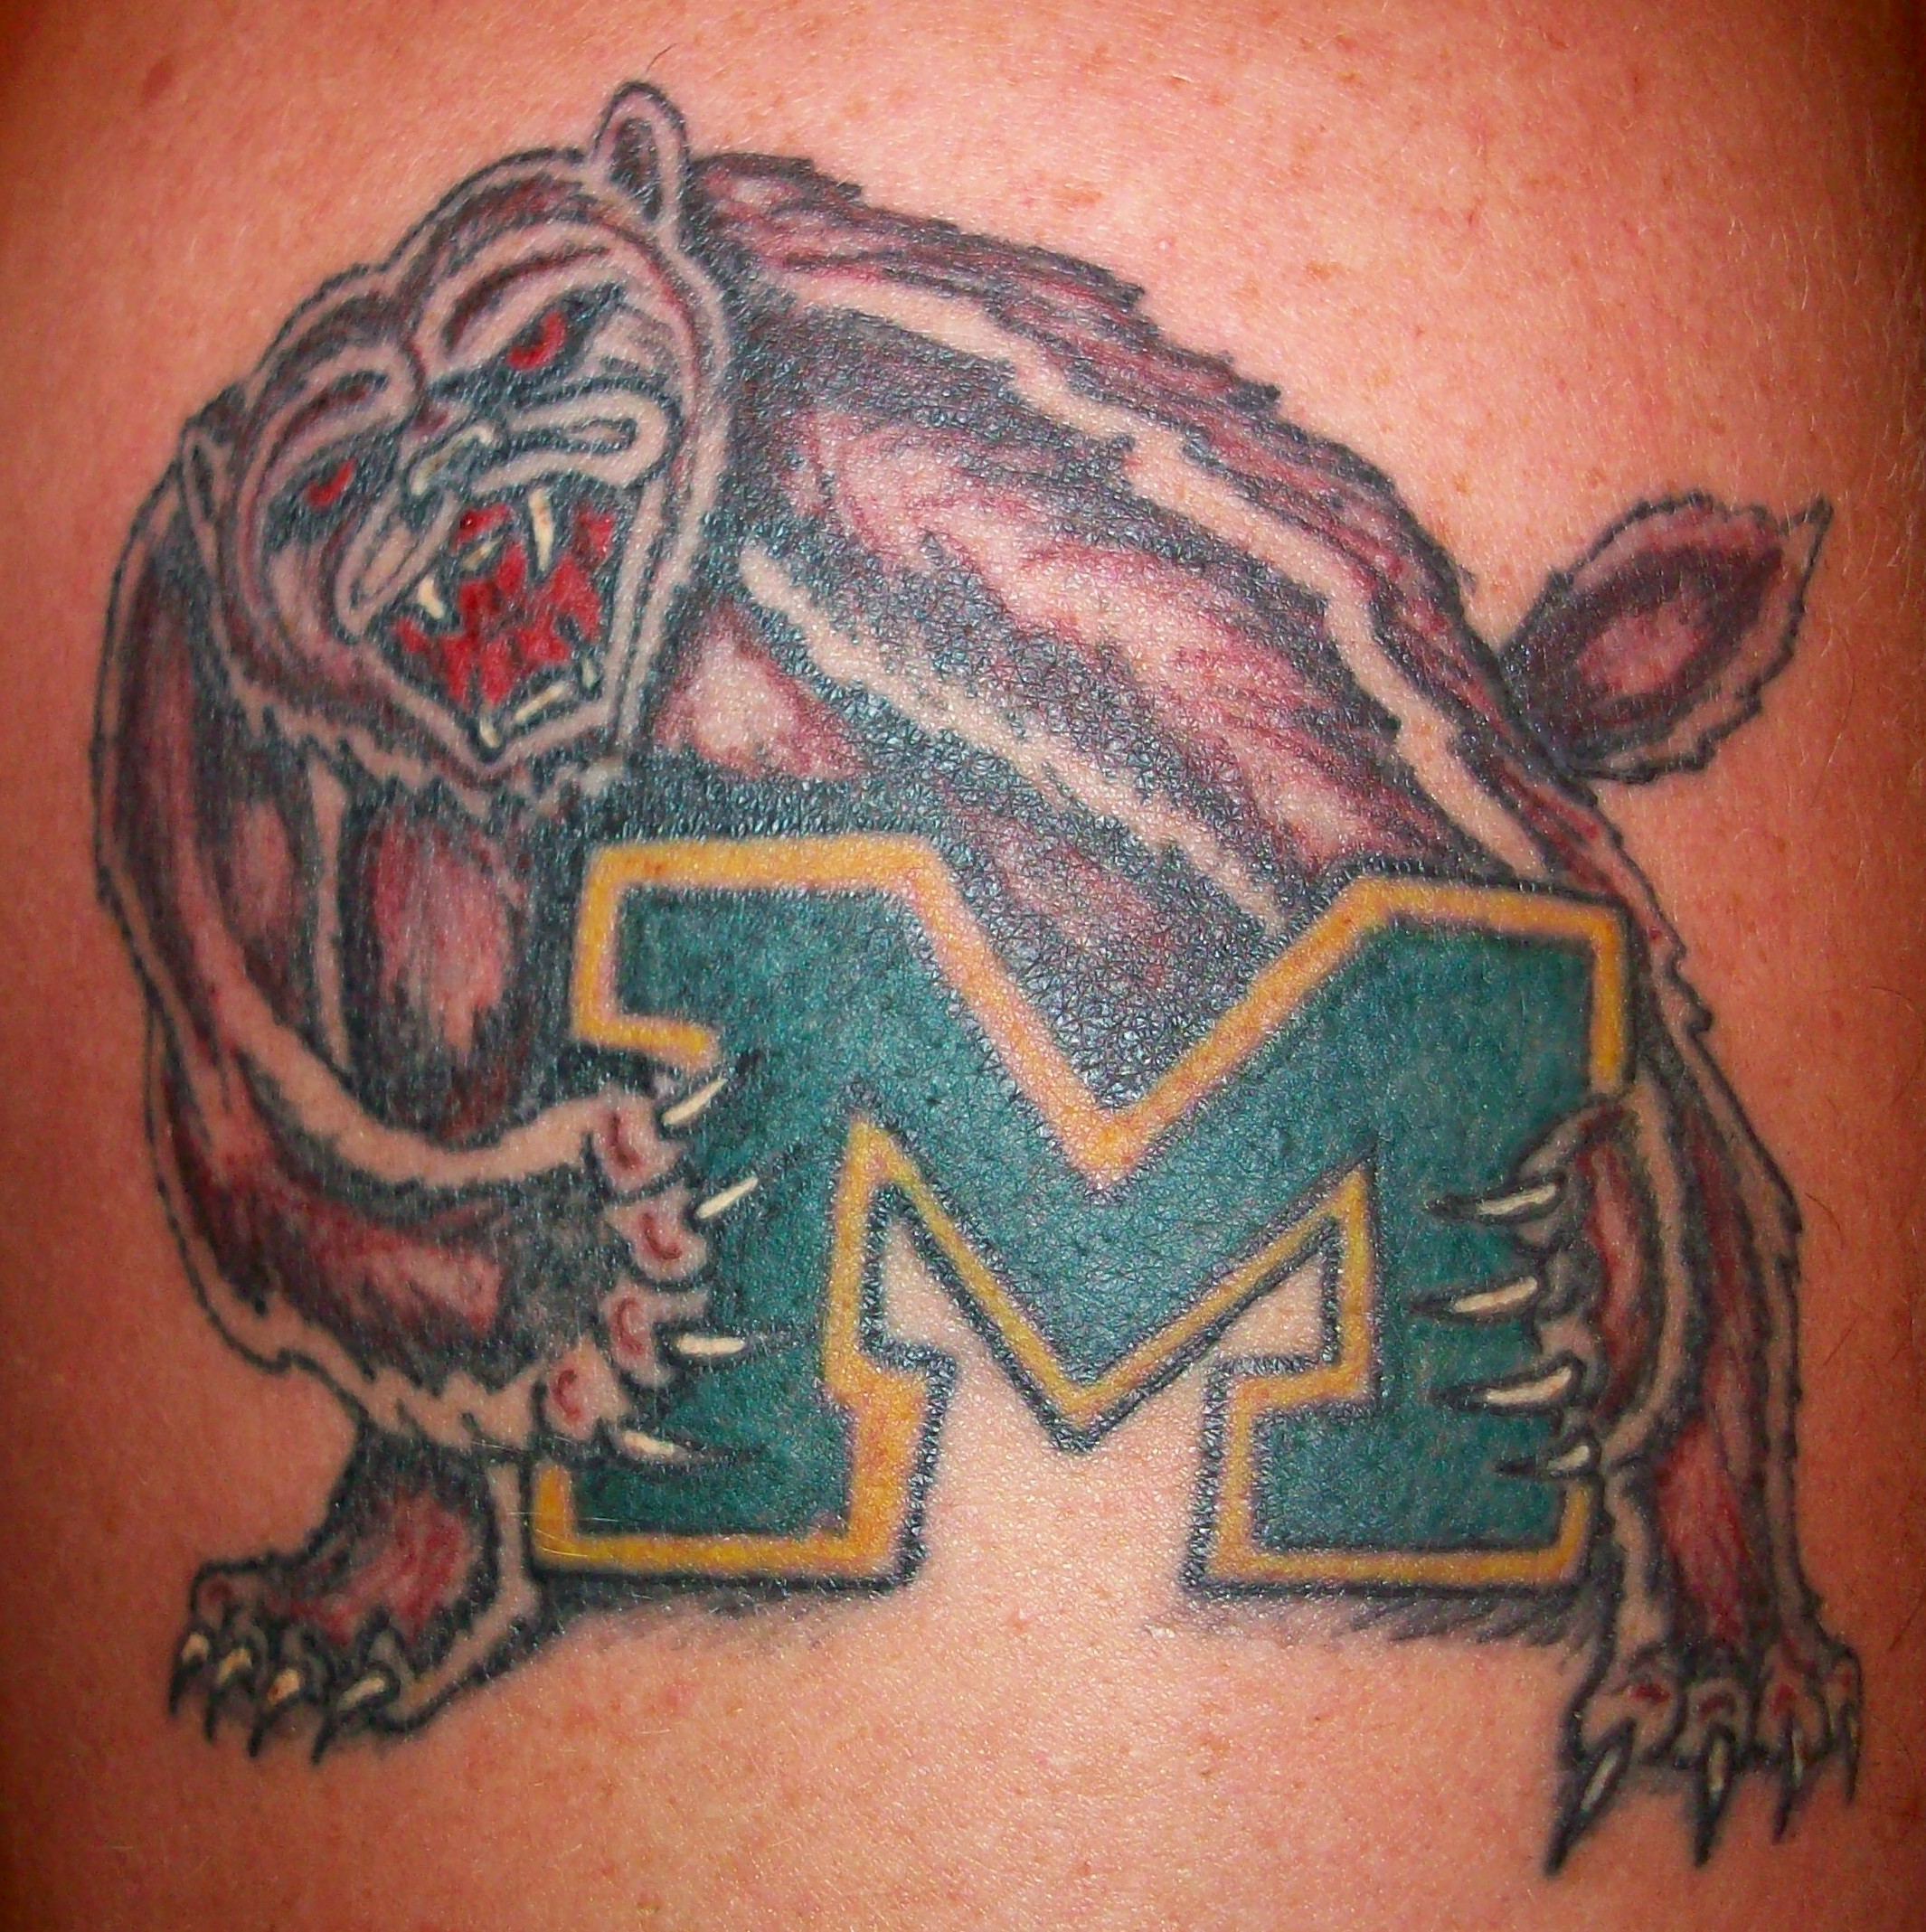 michigan wolverine tattoo picture. Black Bedroom Furniture Sets. Home Design Ideas